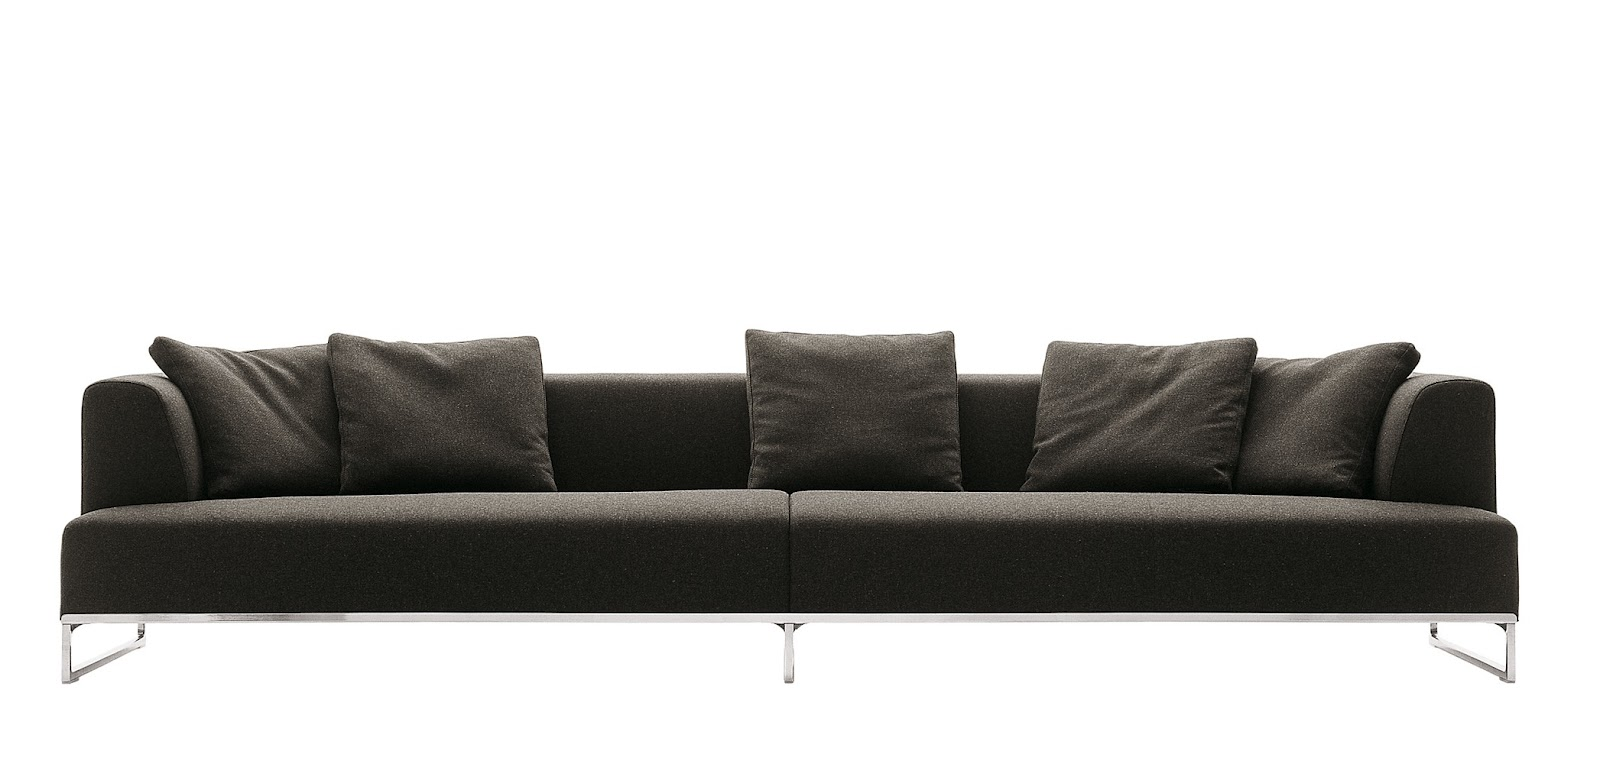 corner when placed beside the sofa also available is a real chaise longue that can stand on its own or be placed beside an a left or right end unit bb italy furniture